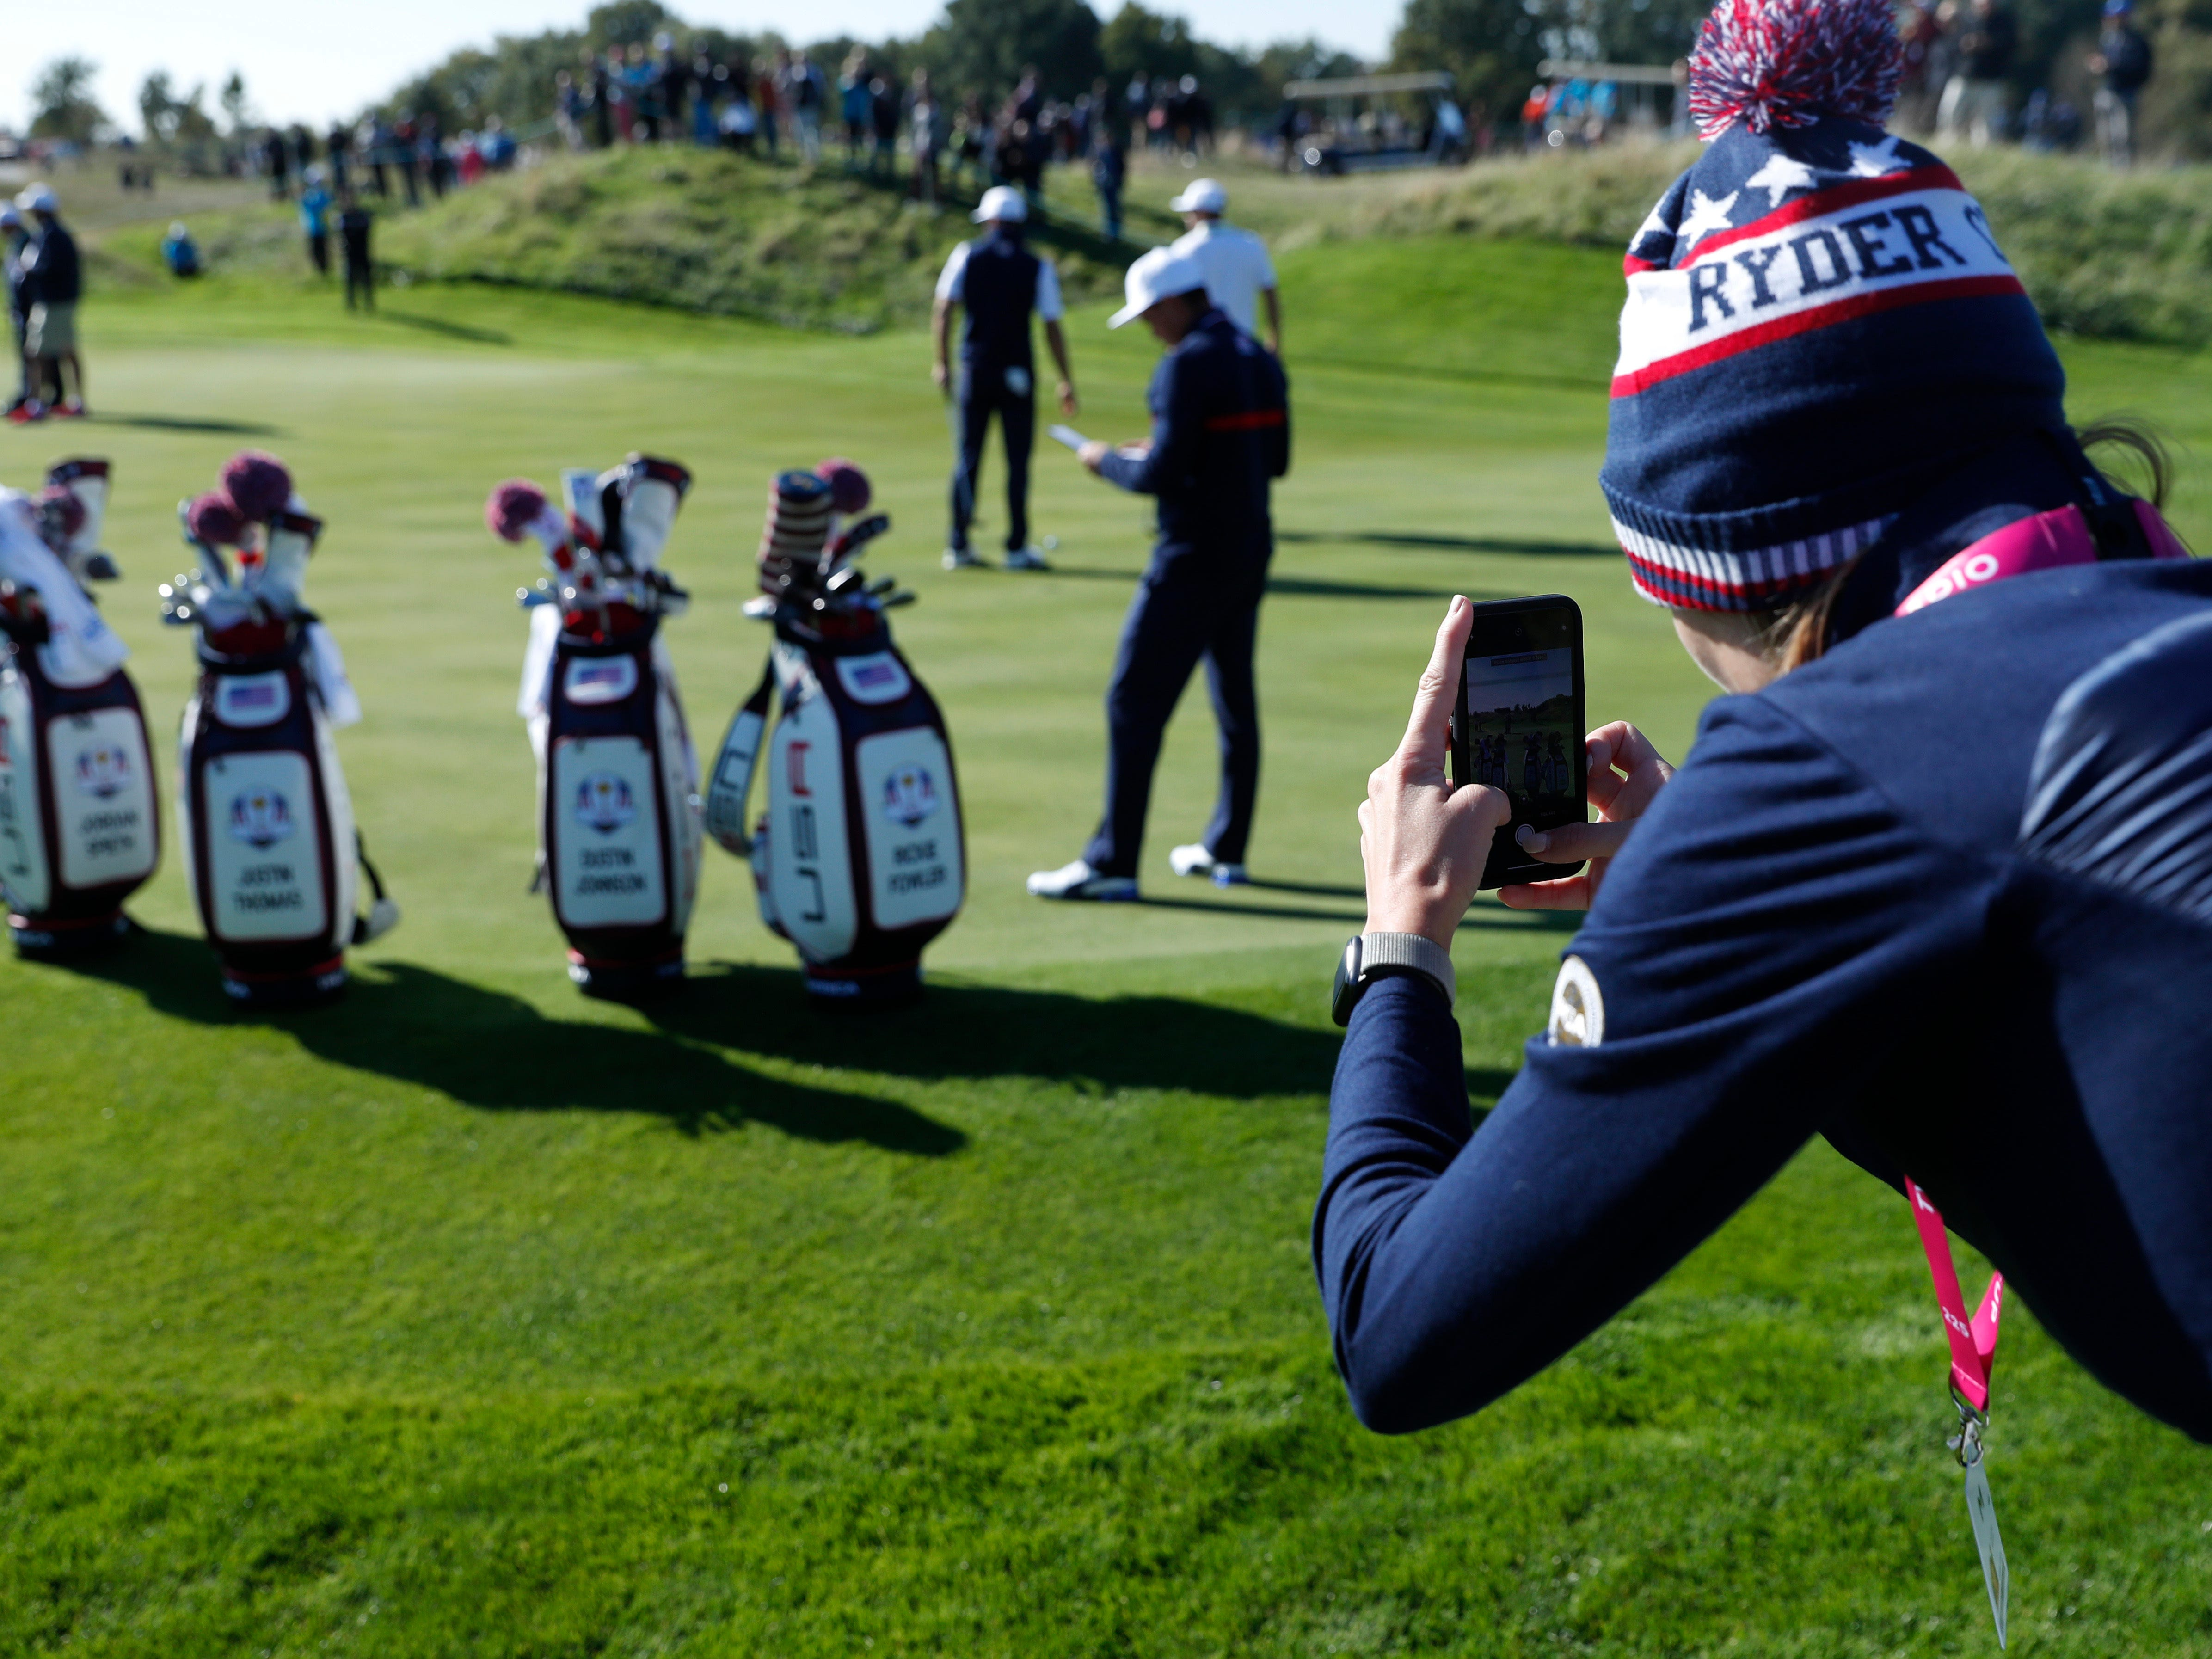 A woman takes photos of golf bags of the US Ryder Cup team.